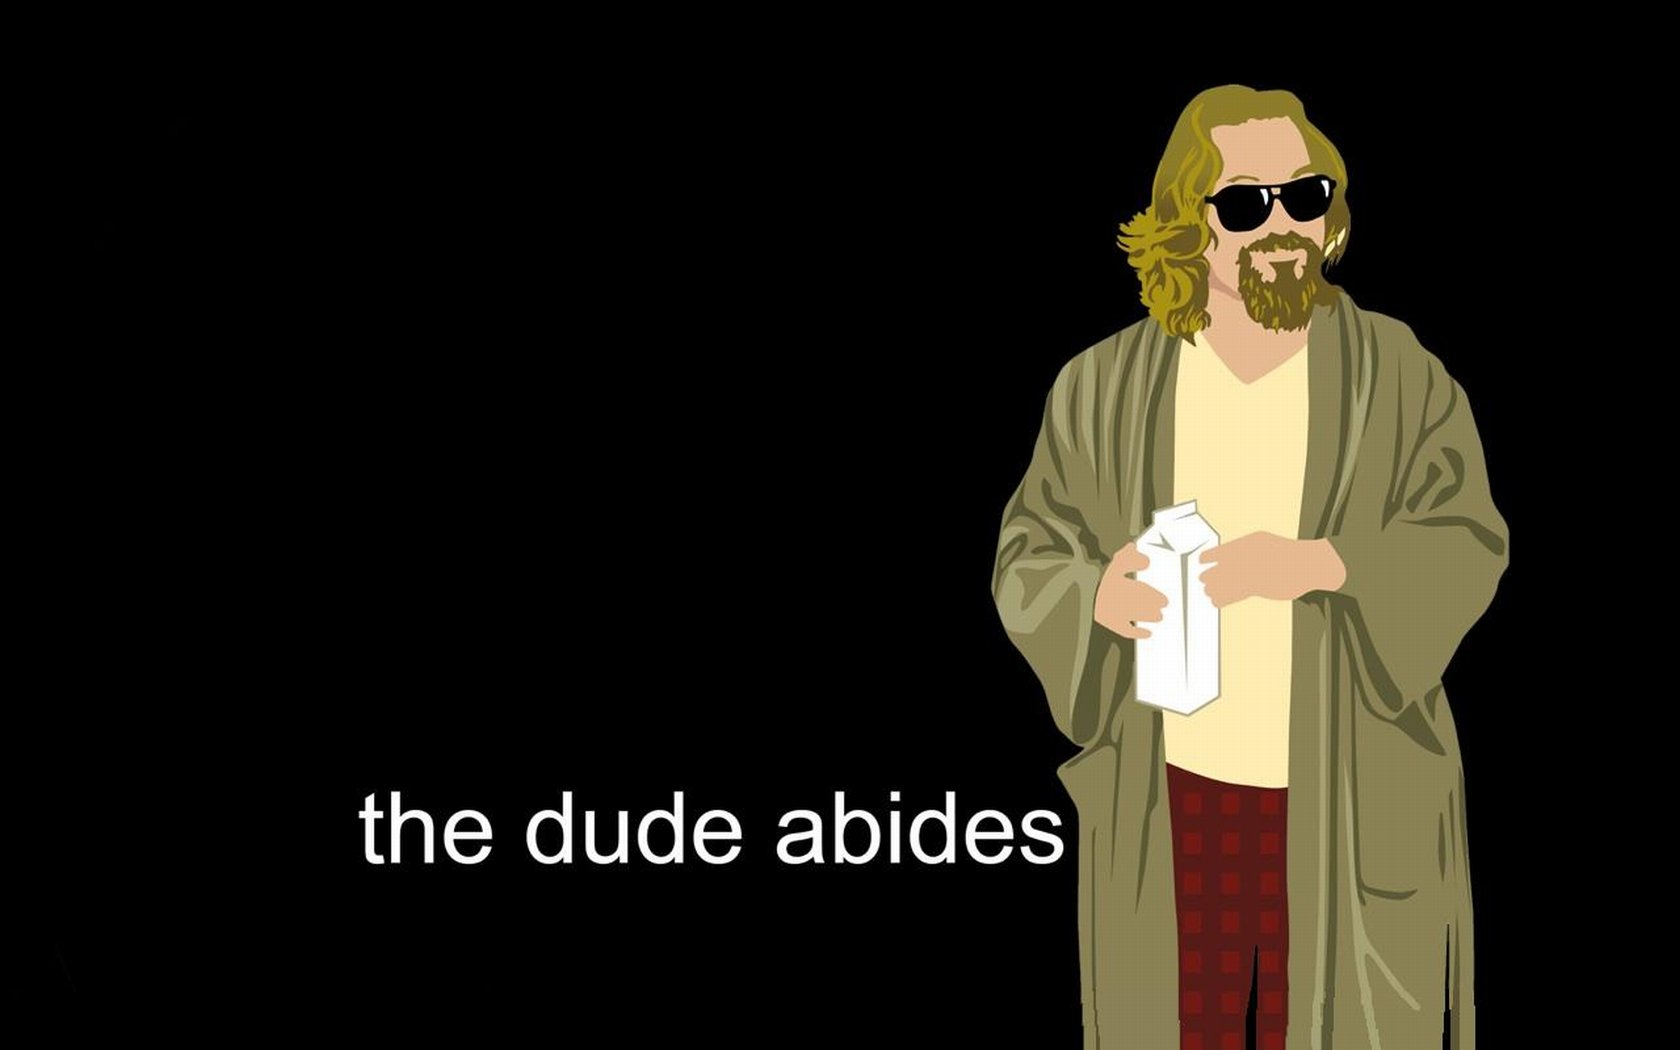 https://jimcofer.com/personal/wp-content/uploads/2008/10/widescreen_the_dude2.jpg avatar